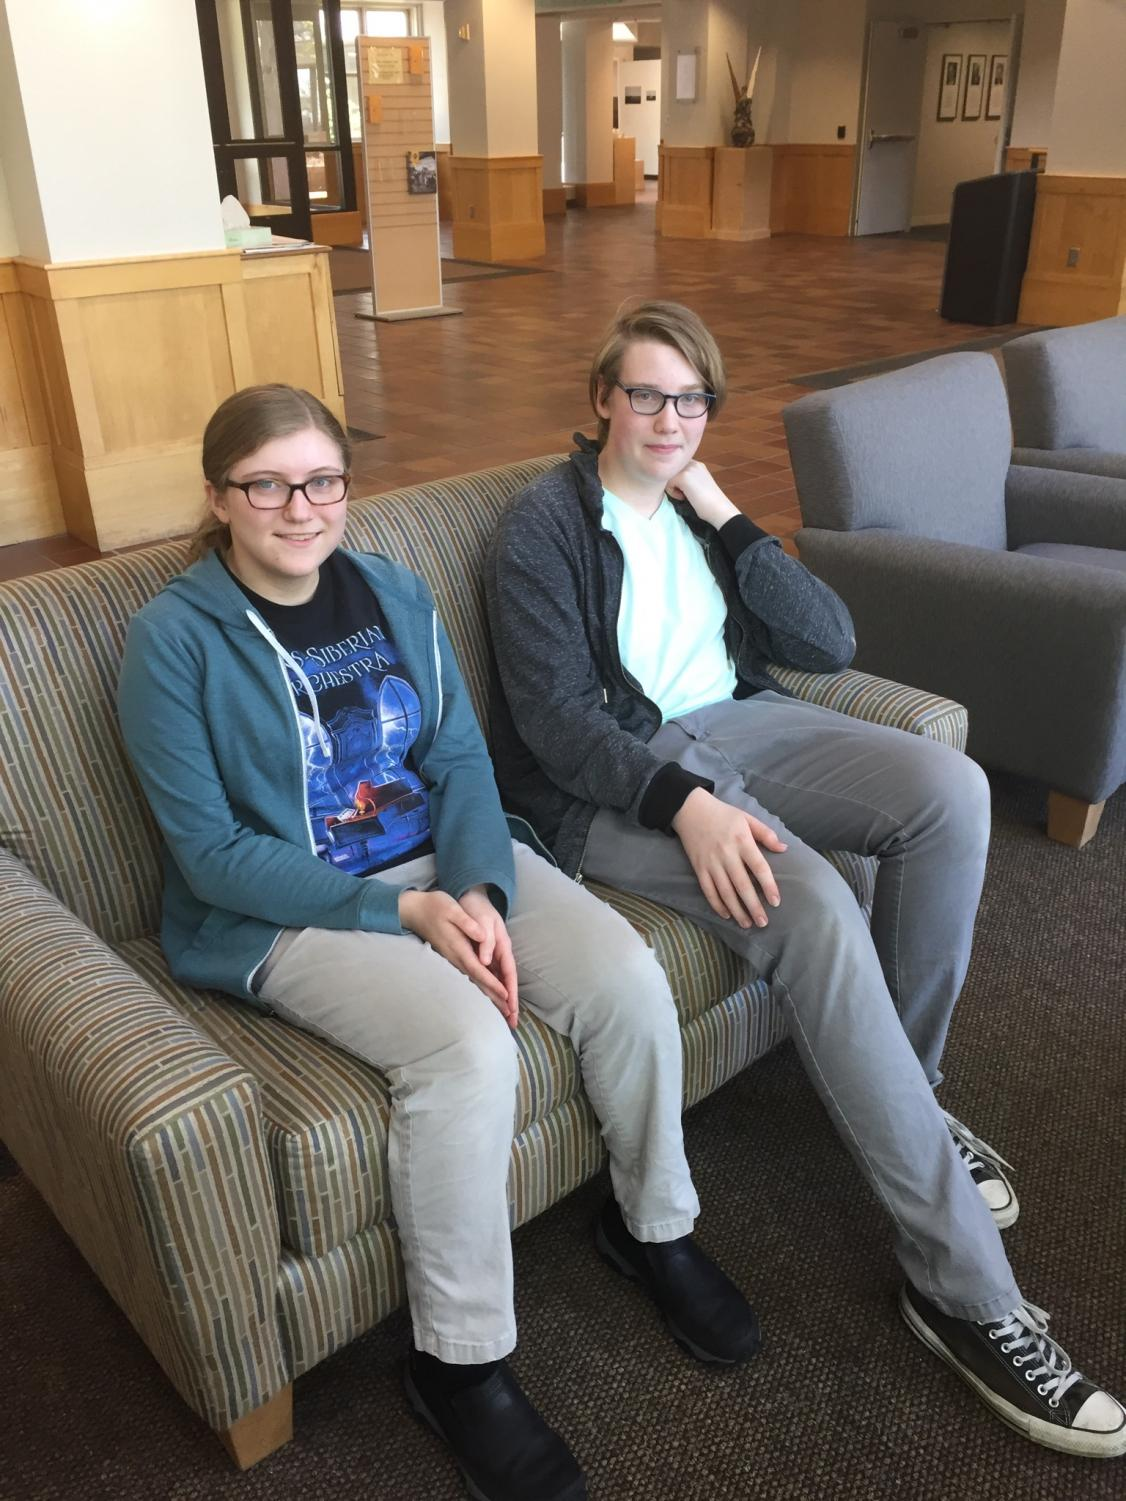 Junior Evan Barnes and sophomore Miranda Bance were elected co-chairs of SPA's Student Technology Committee.